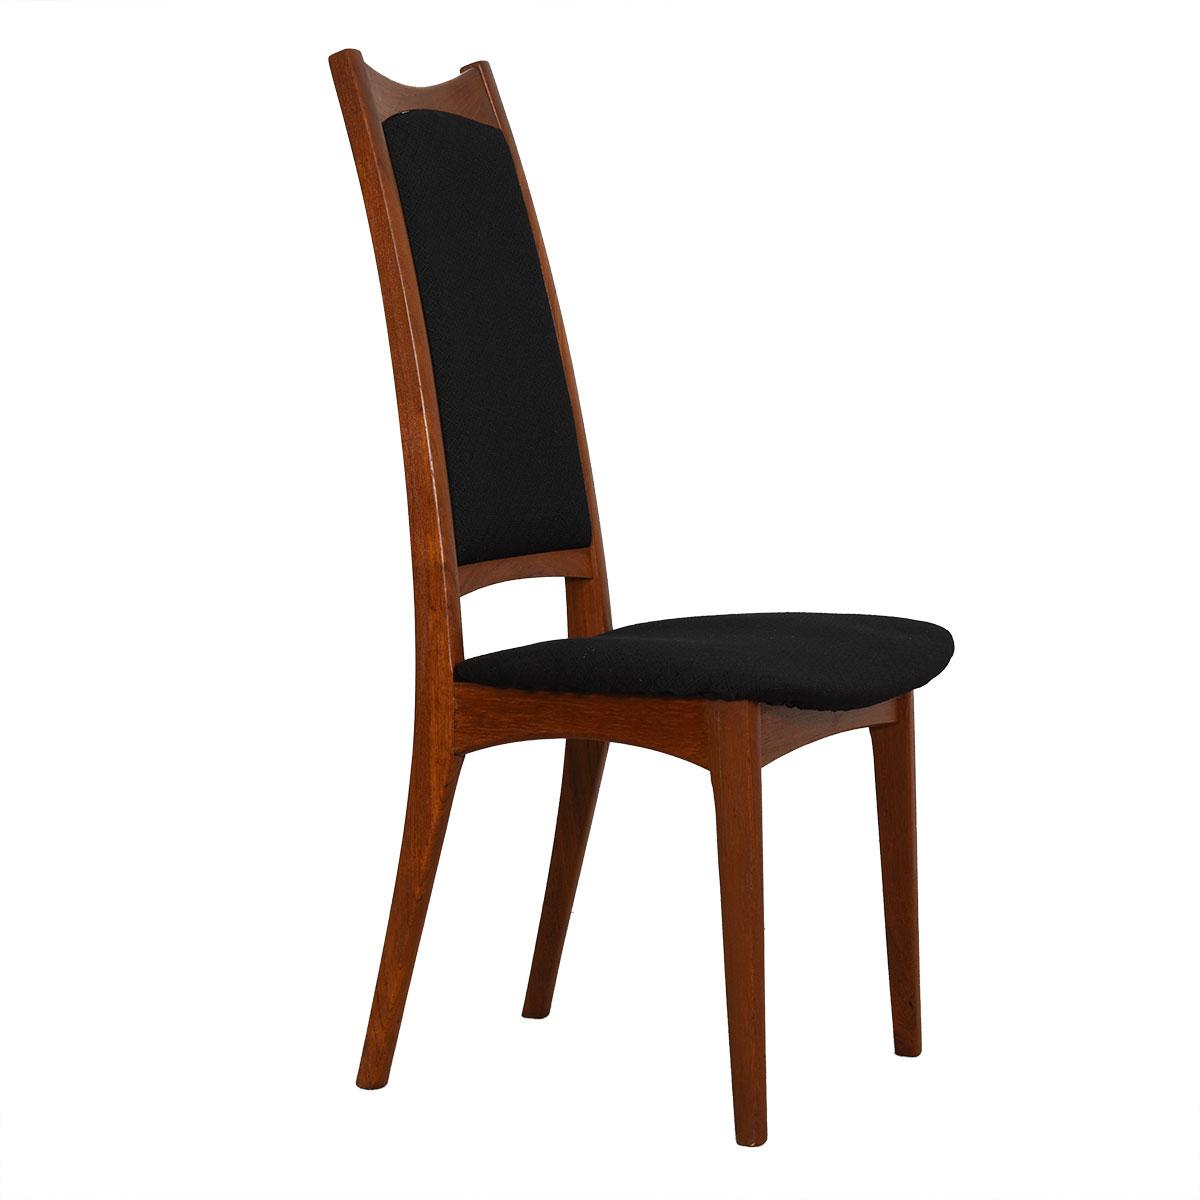 tall back dining chairs chair gym ab workout moreddi danish teak w black upholstery a wonderful set of 8 modern for high style